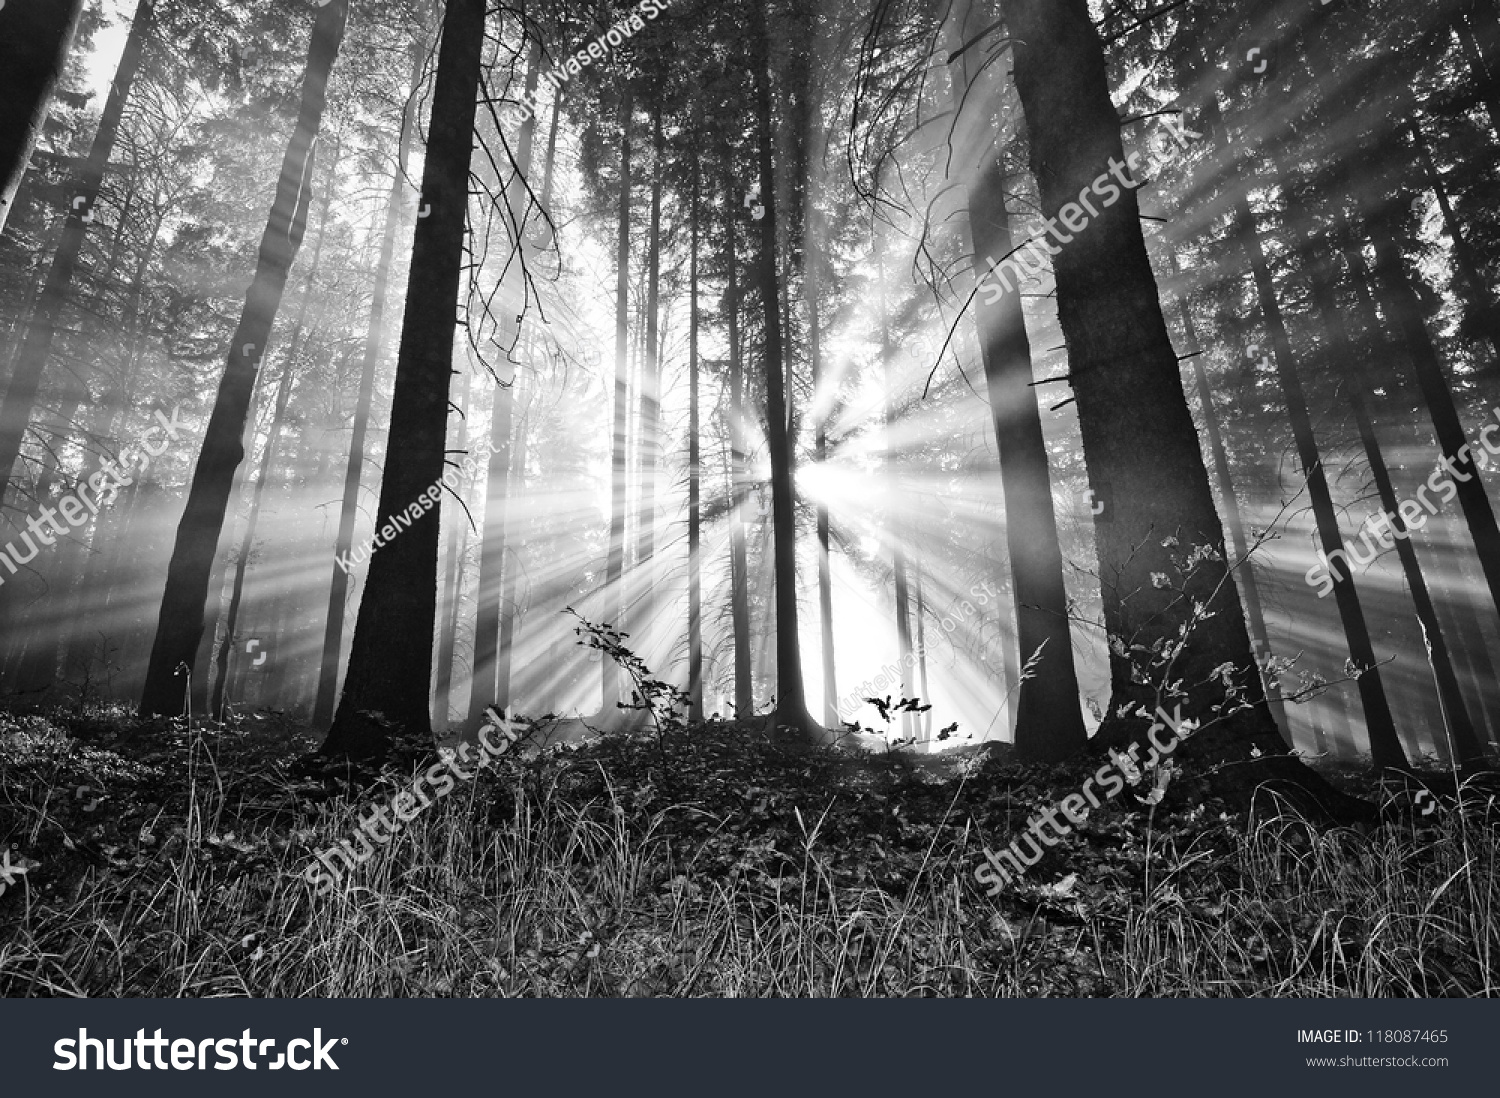 sunrise in a forest #118087465